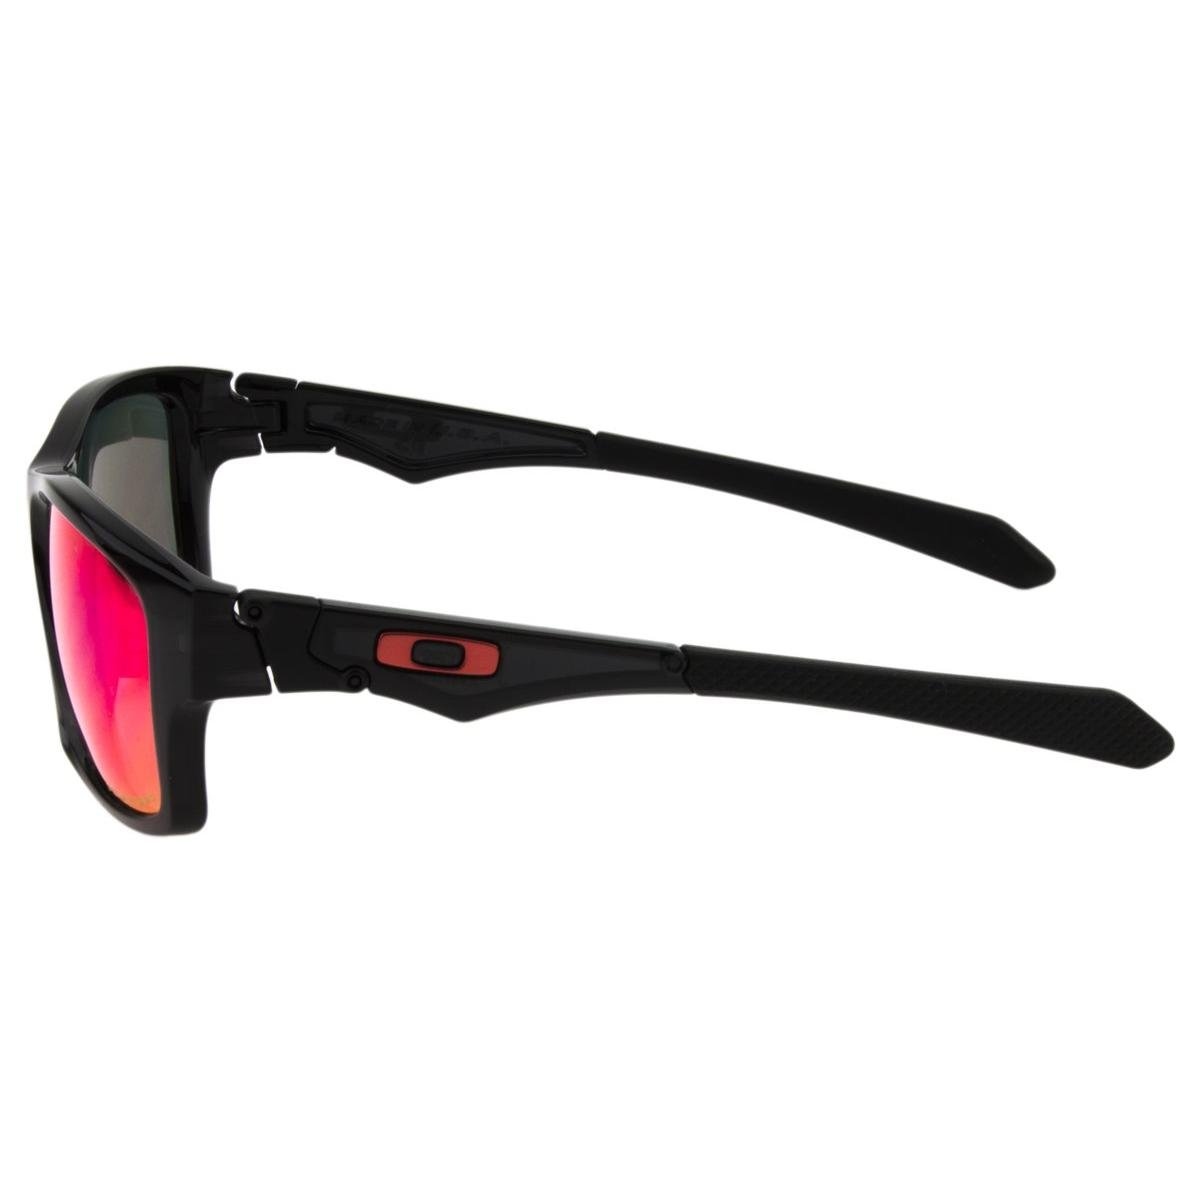 ... Óculos de Sol Oakley Jupiter Squared OO9135P - Black Ink Red Iridium  Polarized ... 99c552b9c9